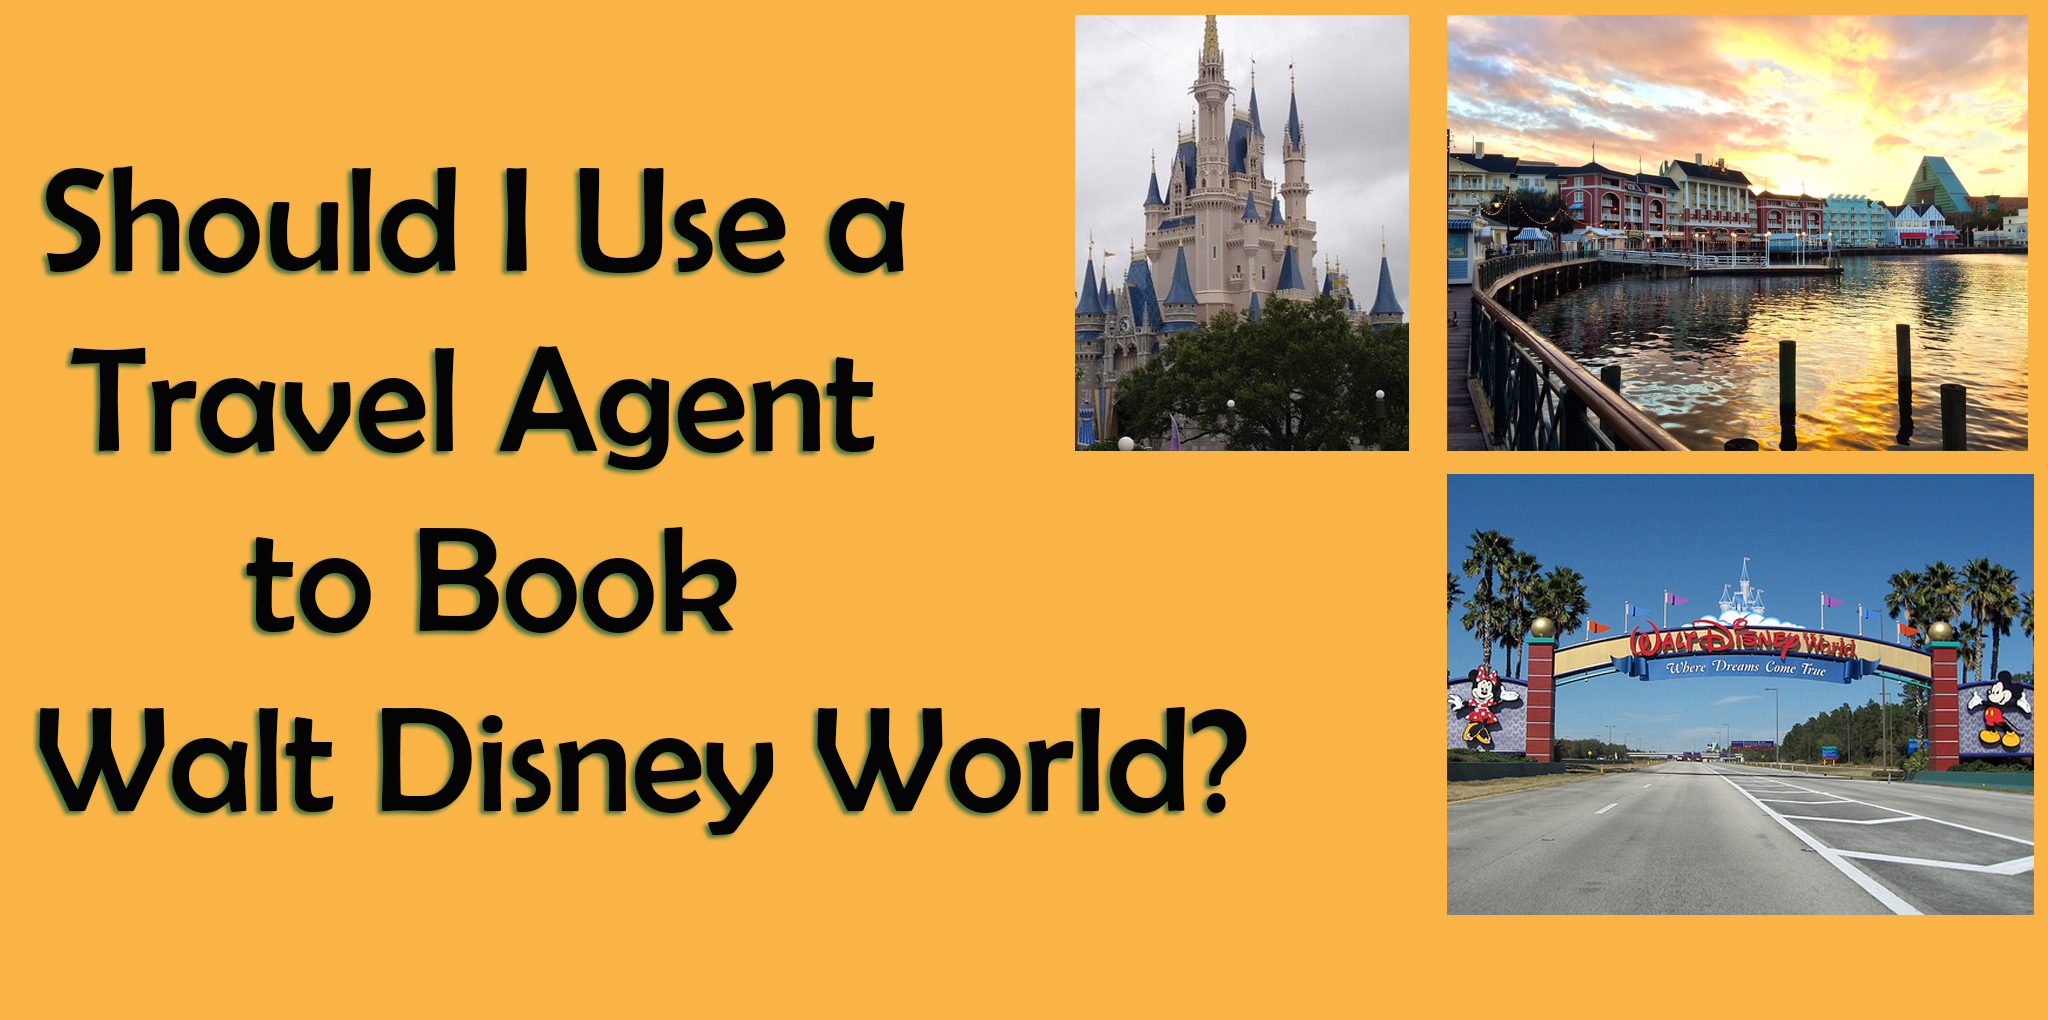 Trip Travel Should I Use A Travel Agent Or Book My Disney World Trip Myself